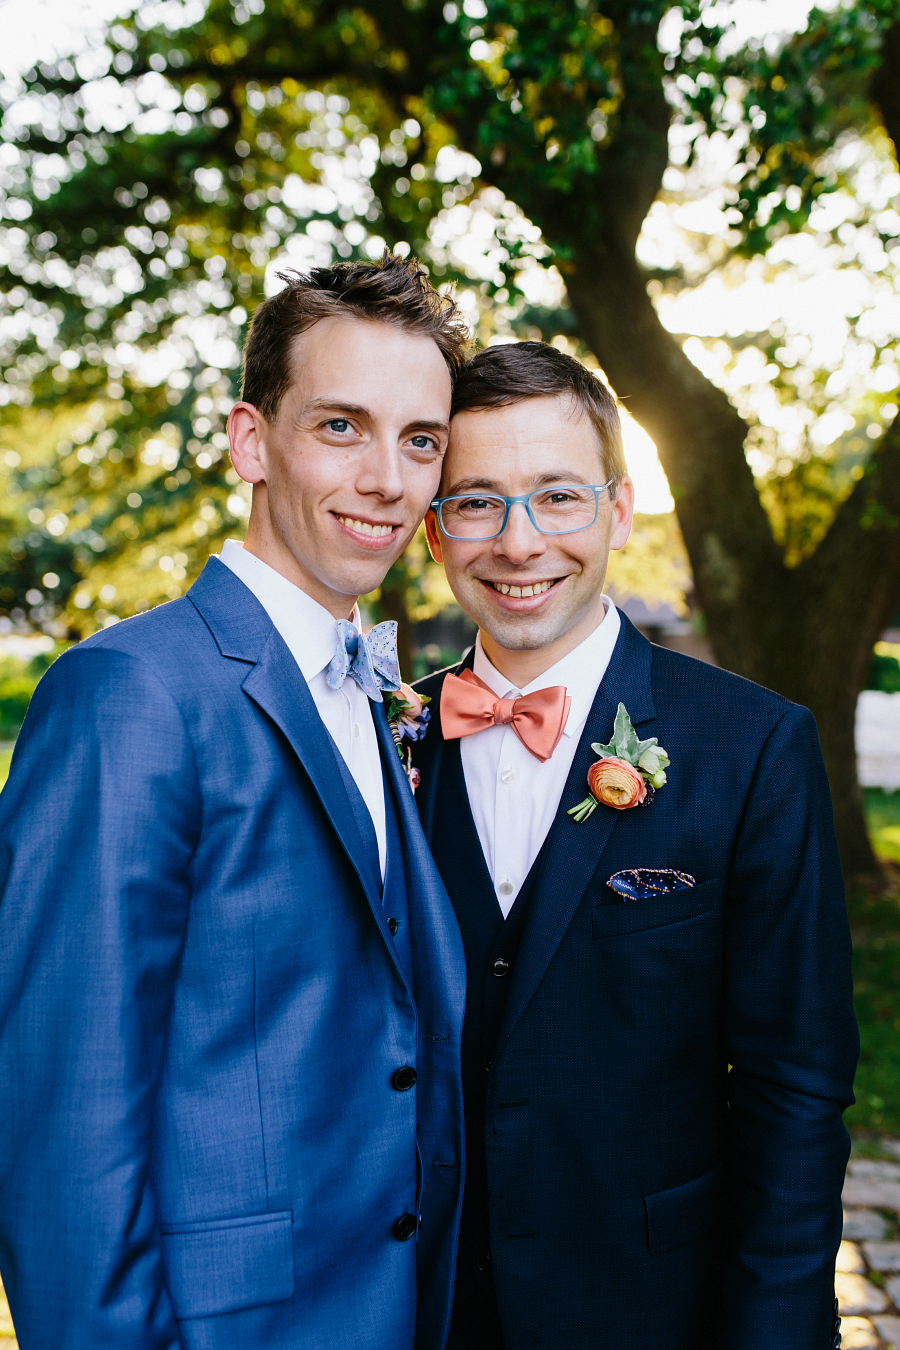 Dapper Grooms in blue Paul Smith Suits for summer wedding